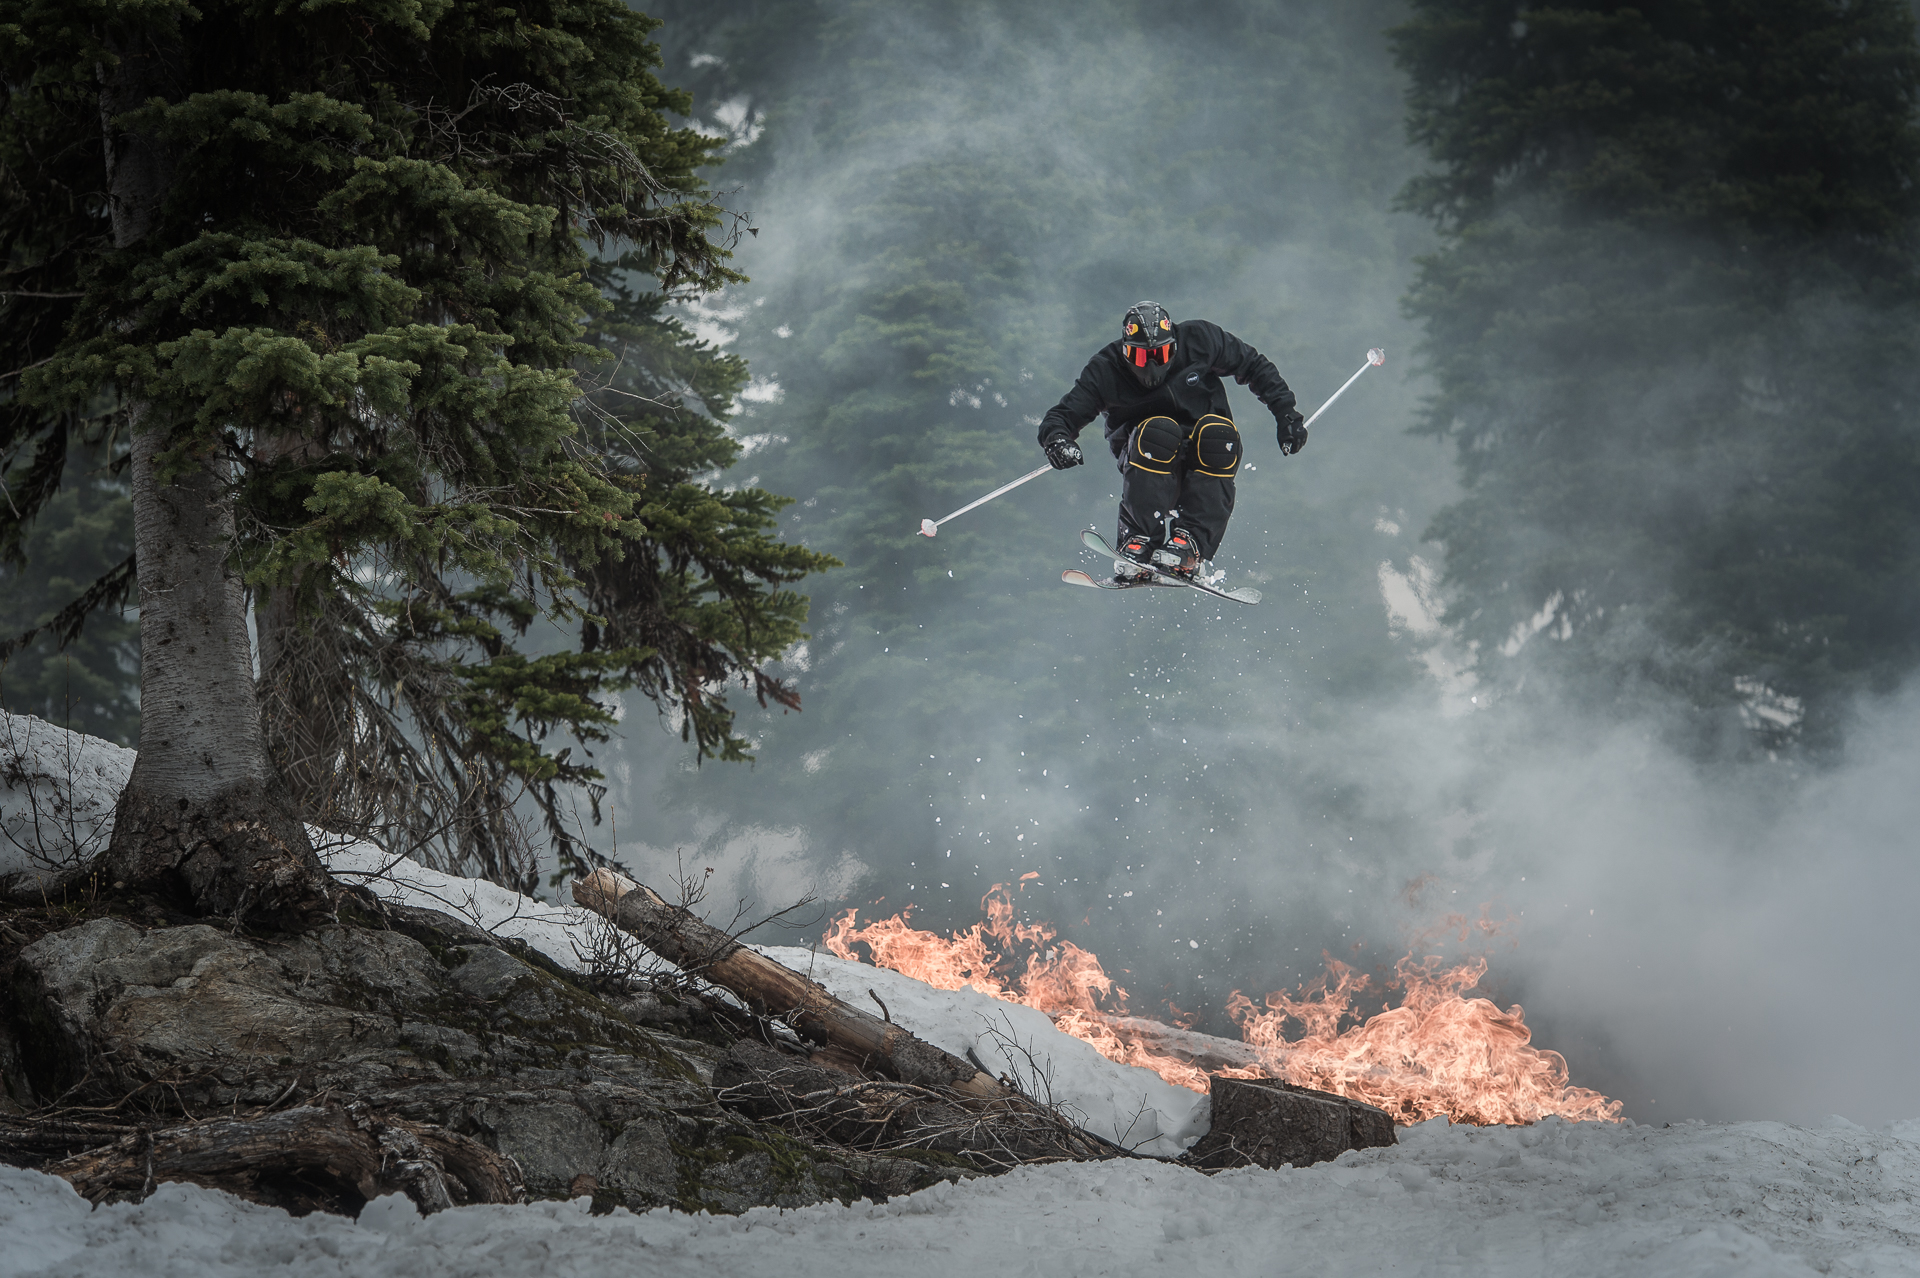 OK, make jumping fire look like the coolest thing ever, then a heli bump for pow, followed by some hobnobbing in the village, and then retire on the deck with some grappa. PHOTO: Blake Jorgenson